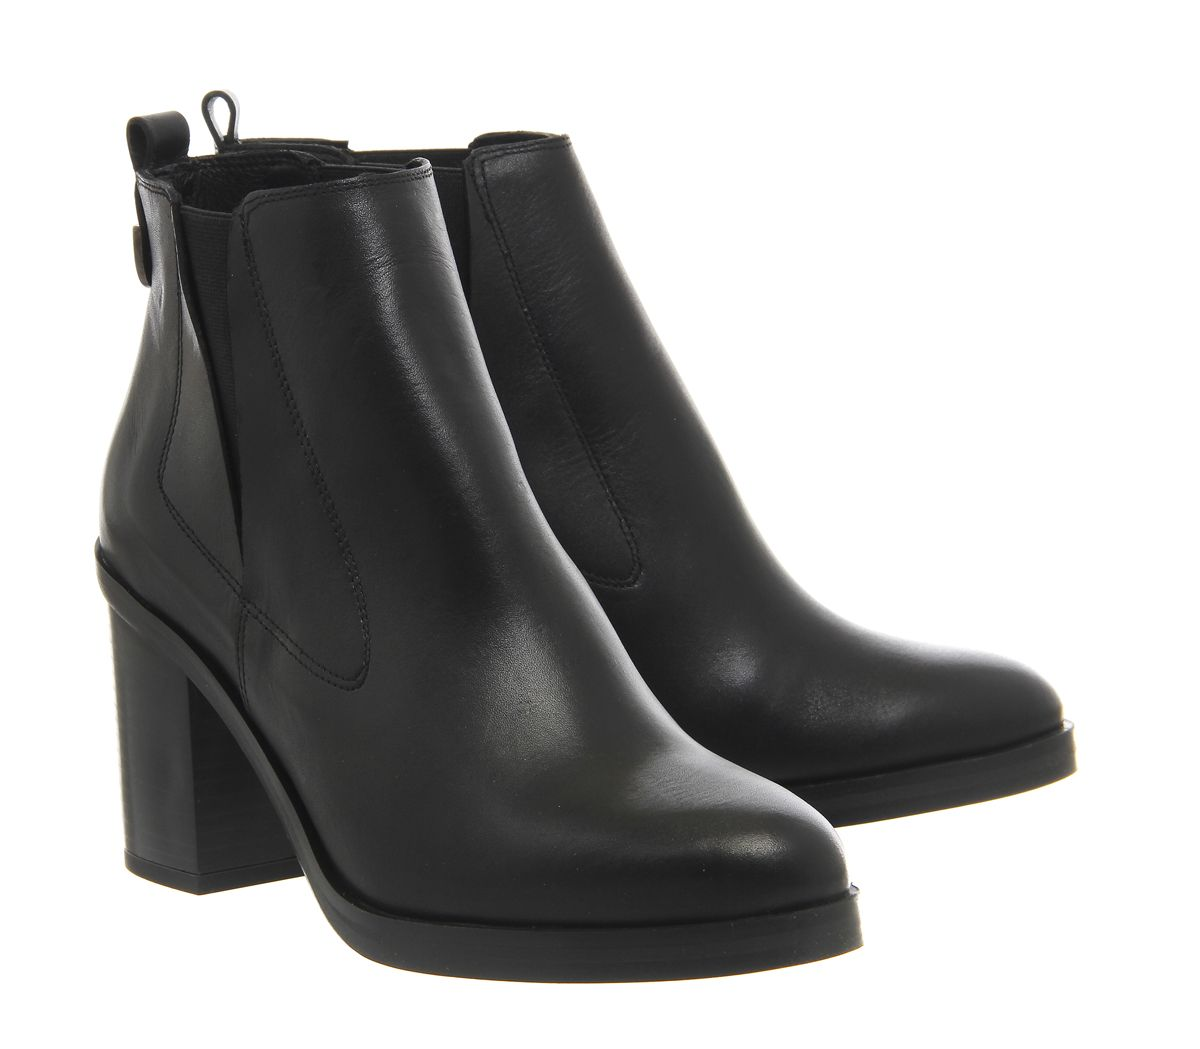 Office Illusion Block Heel Chelsea Boots Black Leather - Ankle Boots